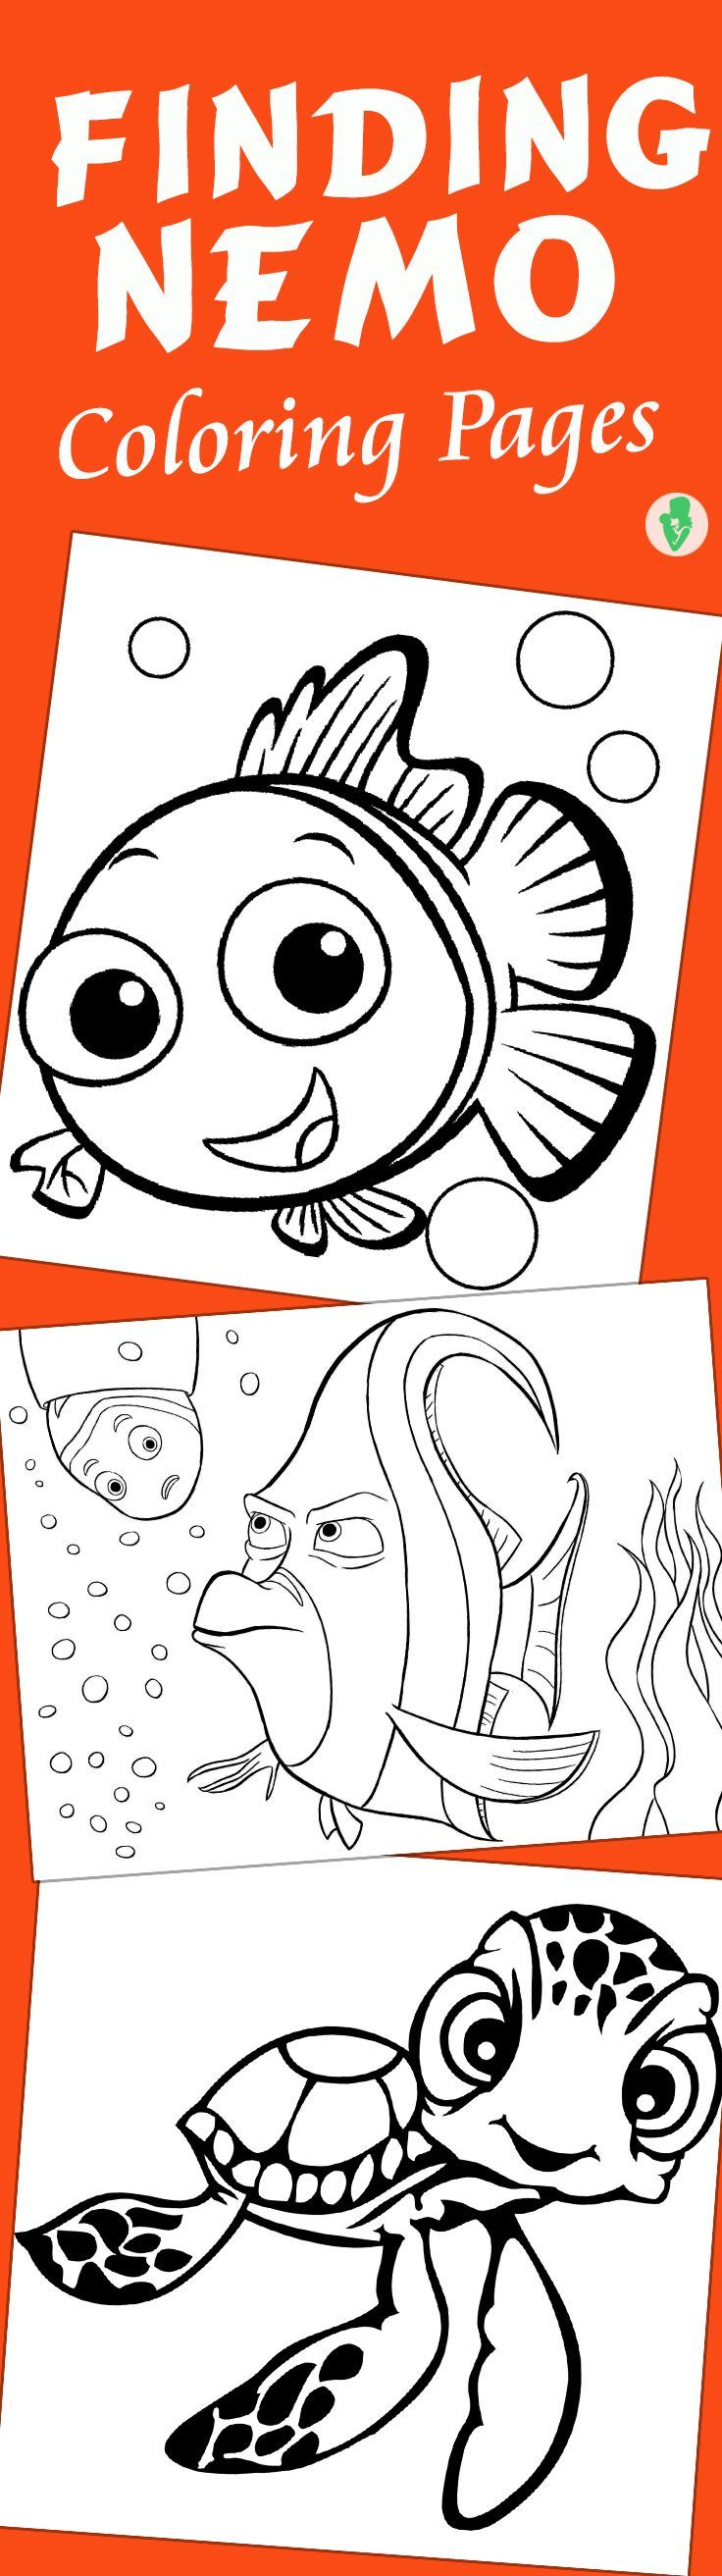 40 Finding Nemo Coloring Pages Free Printables Free